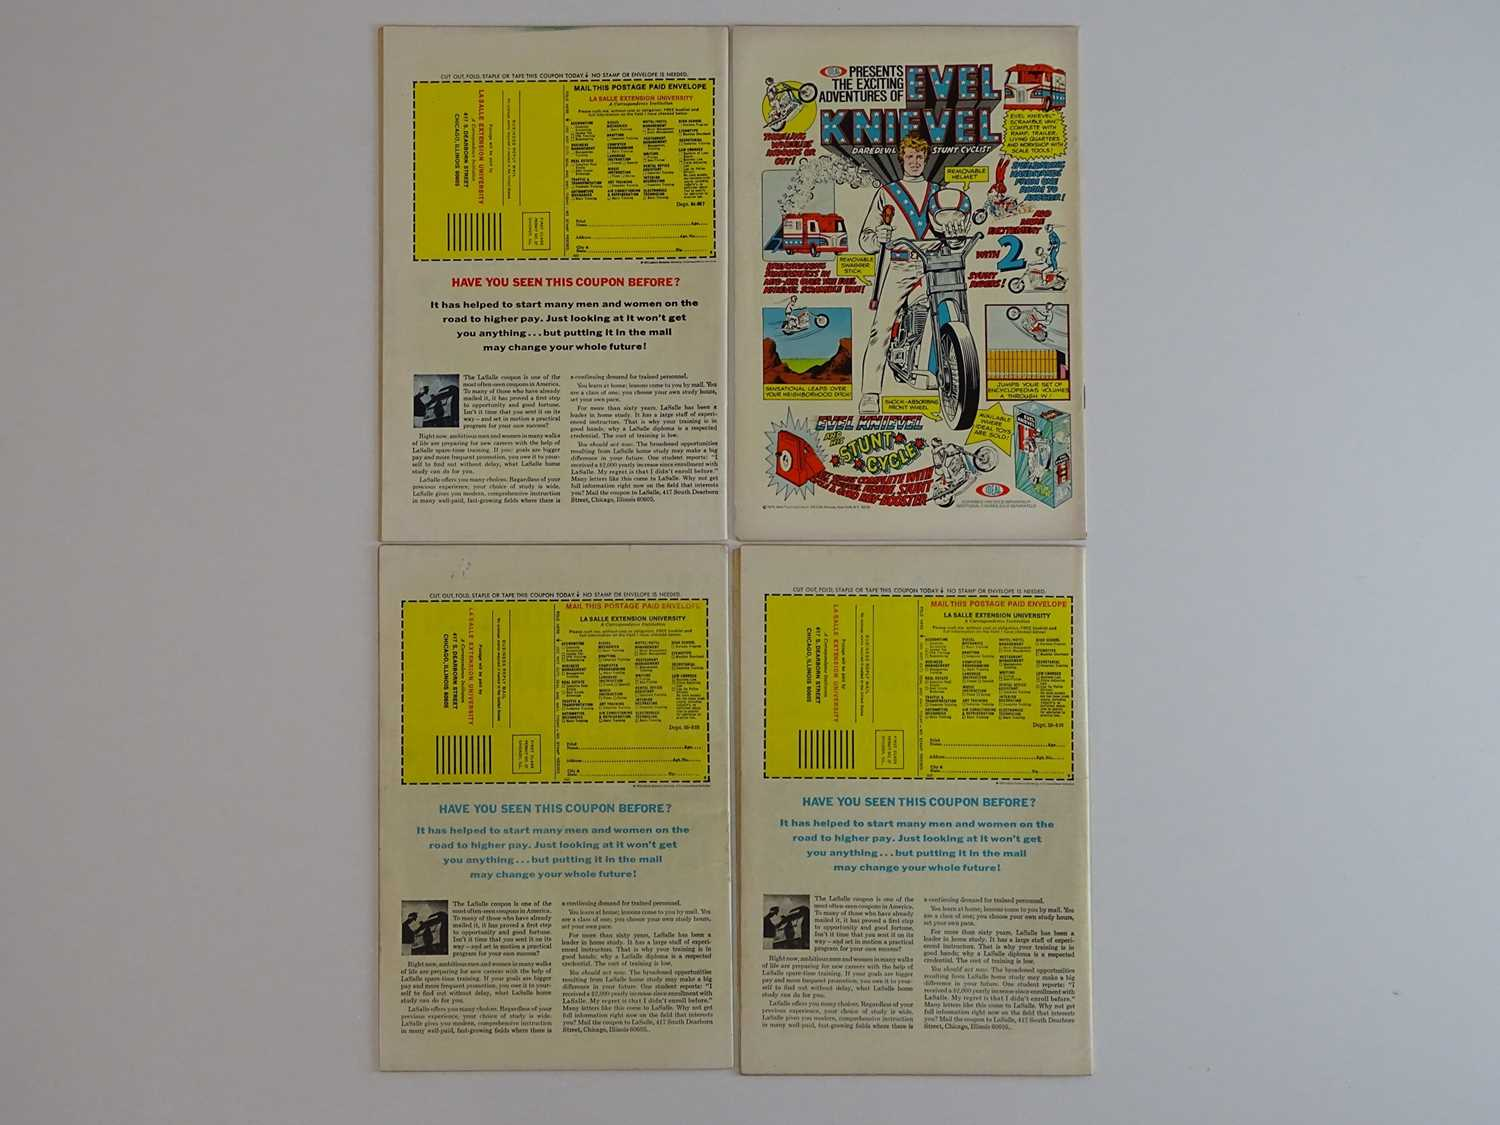 AMAZING SPIDER-MAN #127, 128, 130, 131 - (4 in Lot) - (1973/74 - MARVEL) - Includes First appearance - Image 2 of 2